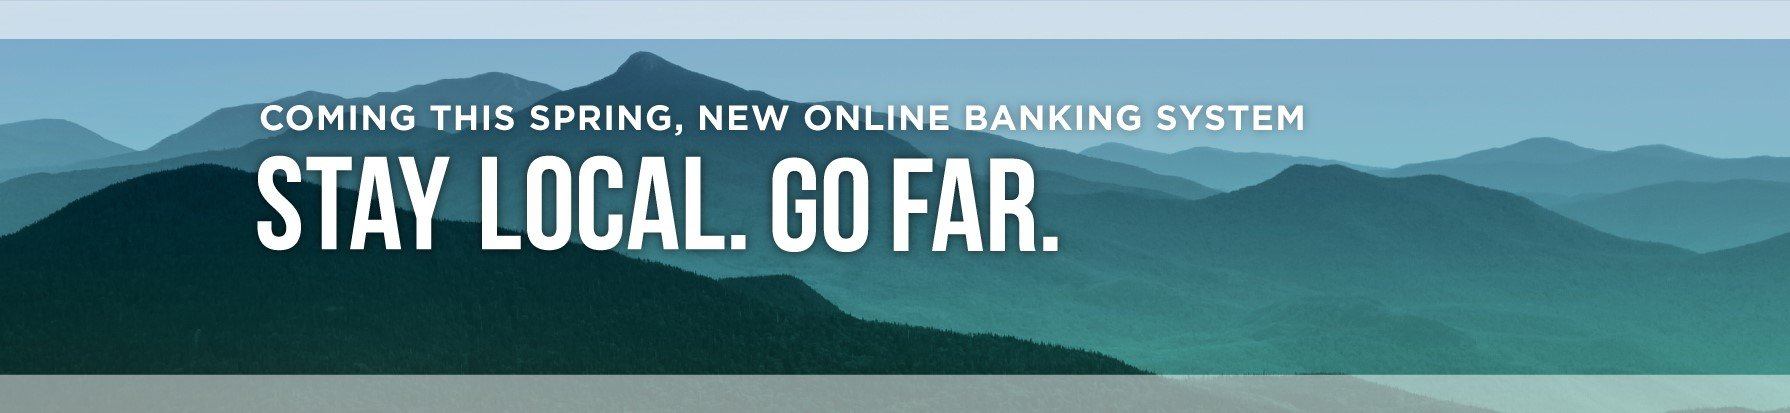 New Online Banking System